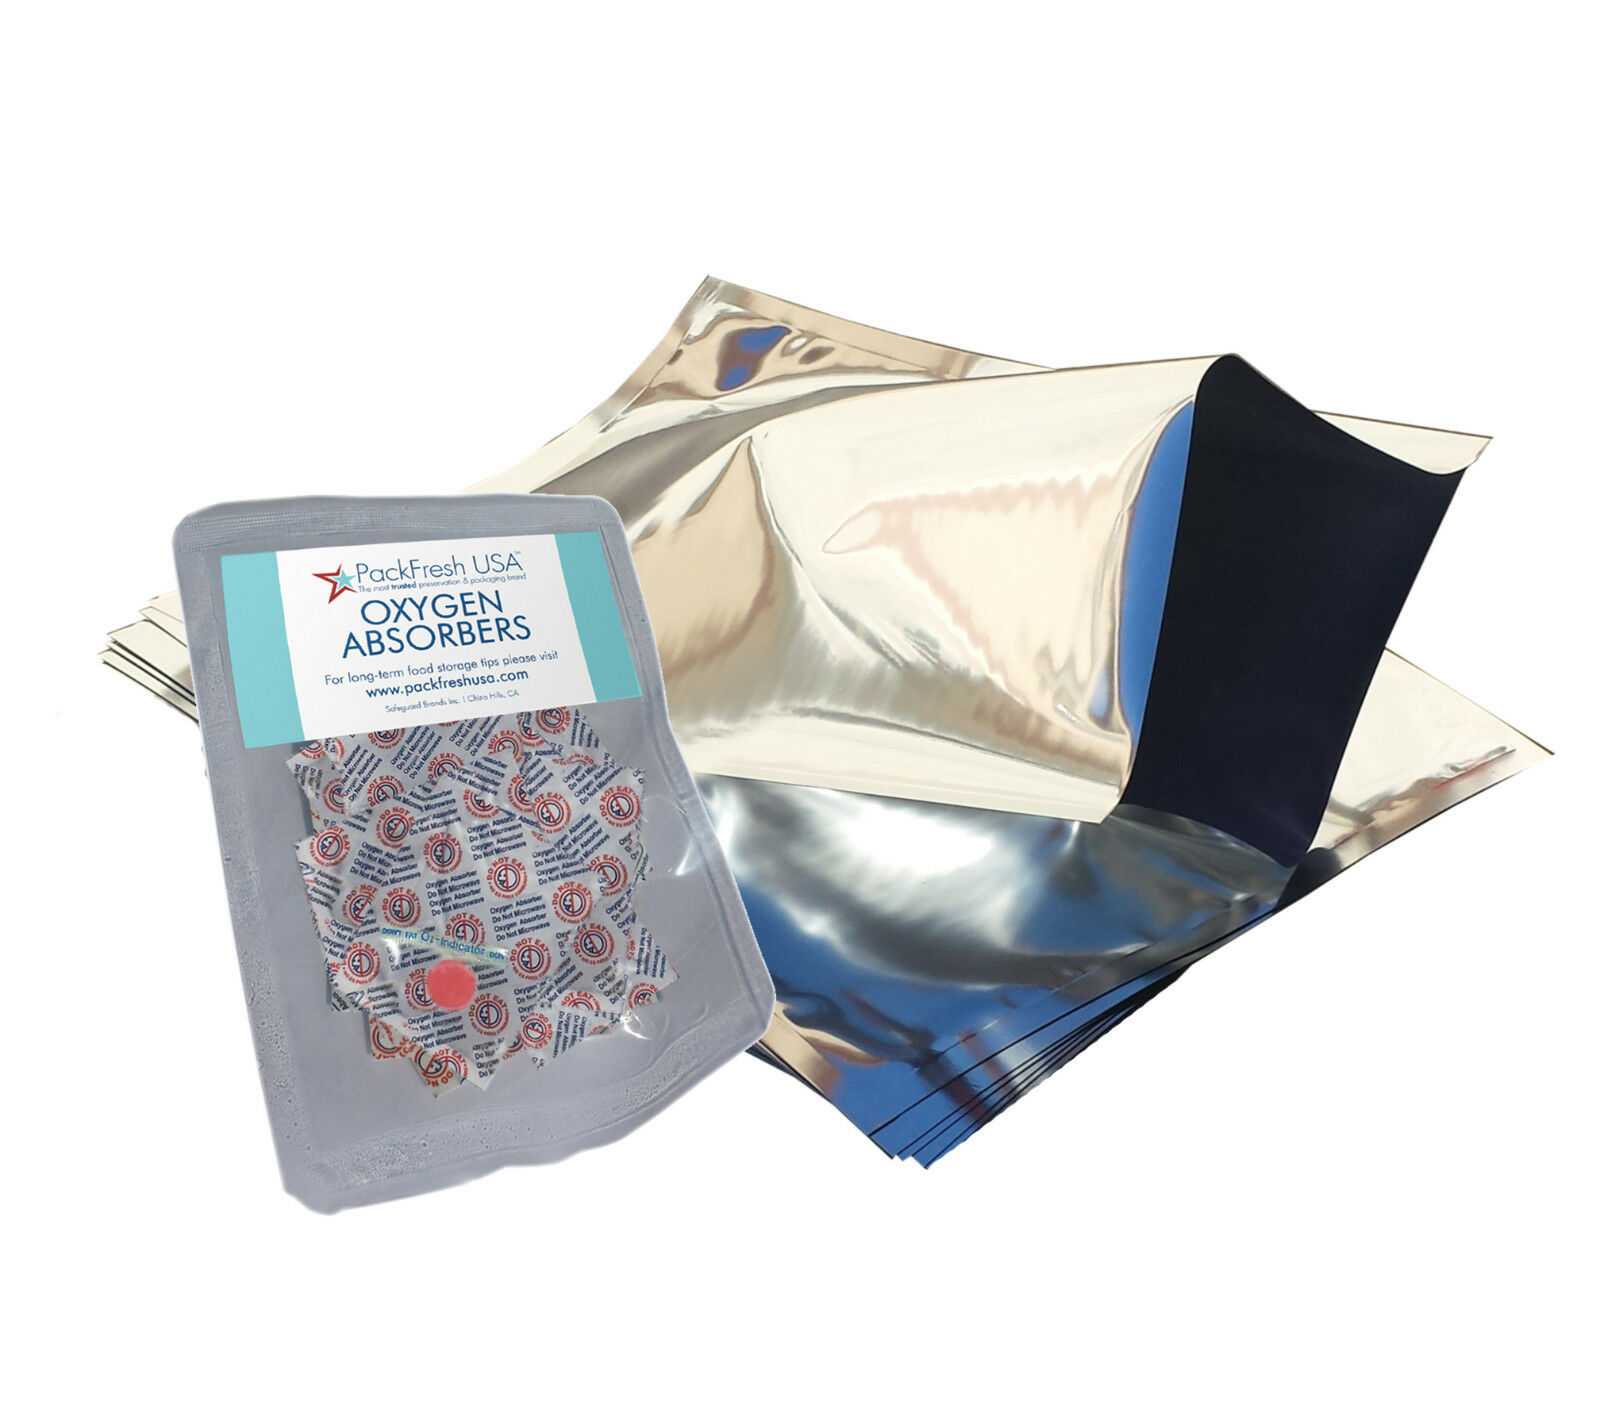 1 Gallon Mylar Foil Bags +  500cc Oxygen Absorbers PackFres